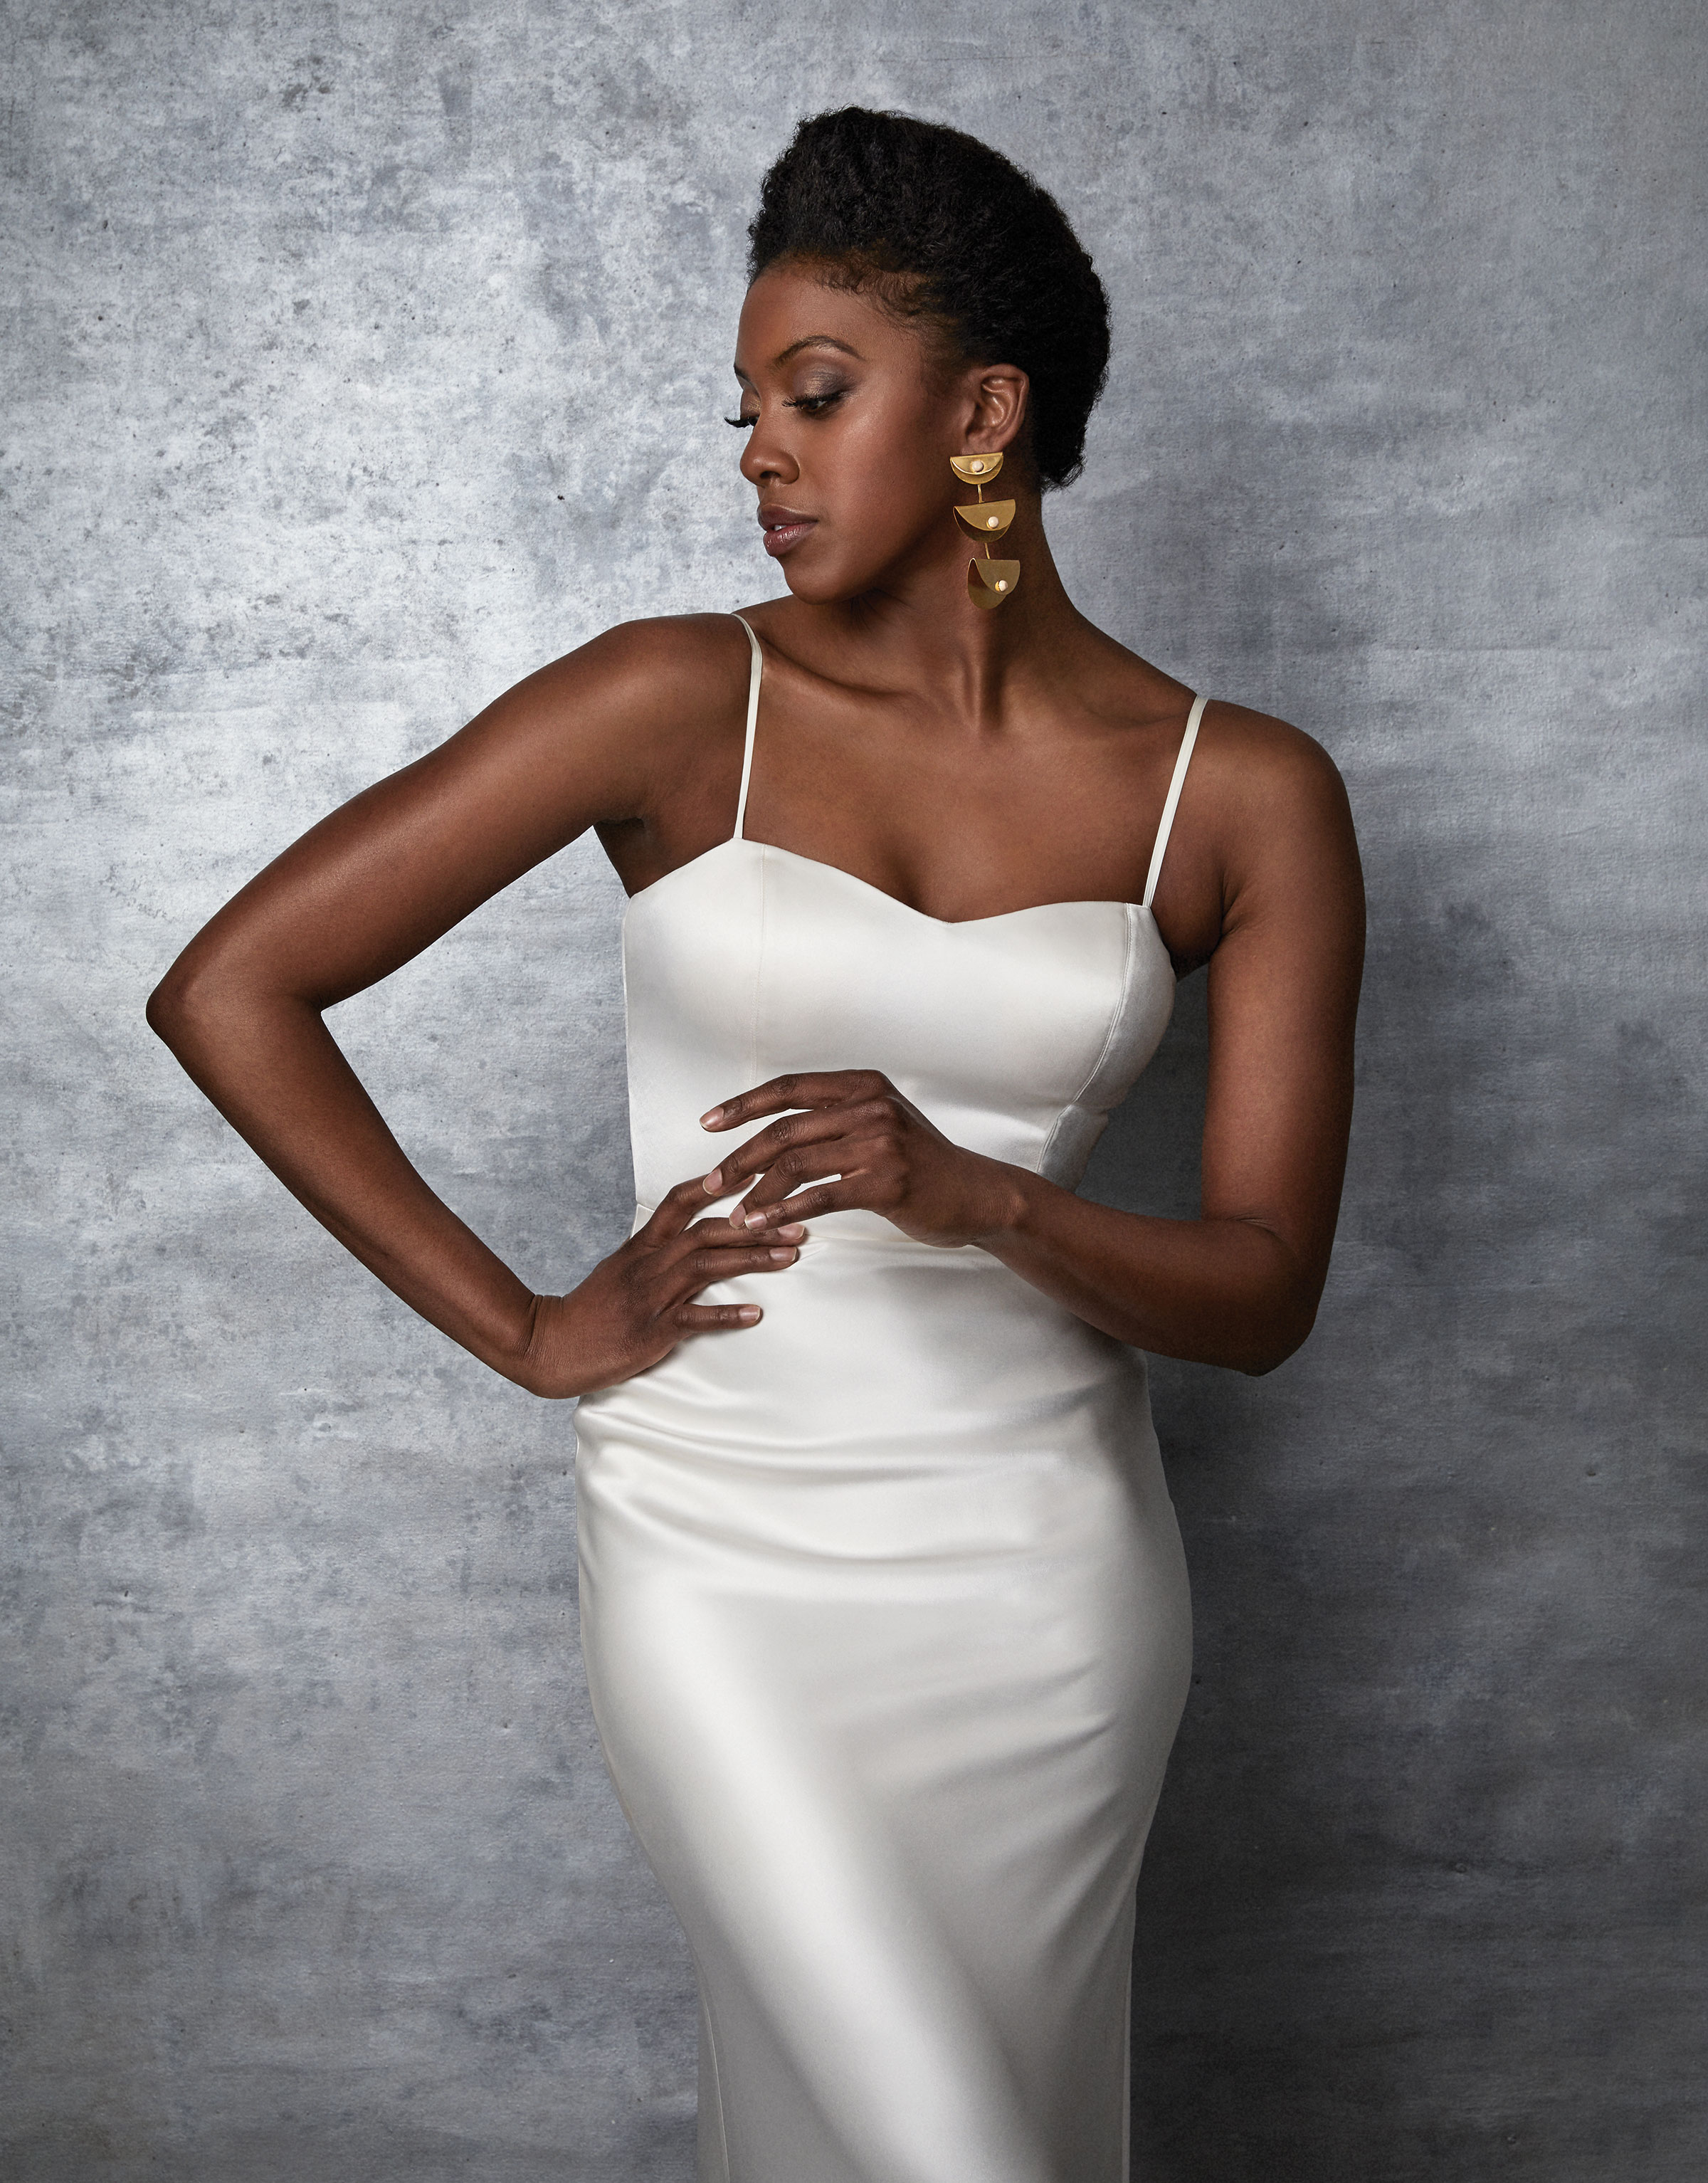 Condola Rashad naked (62 photo), Pussy, Hot, Instagram, cleavage 2020